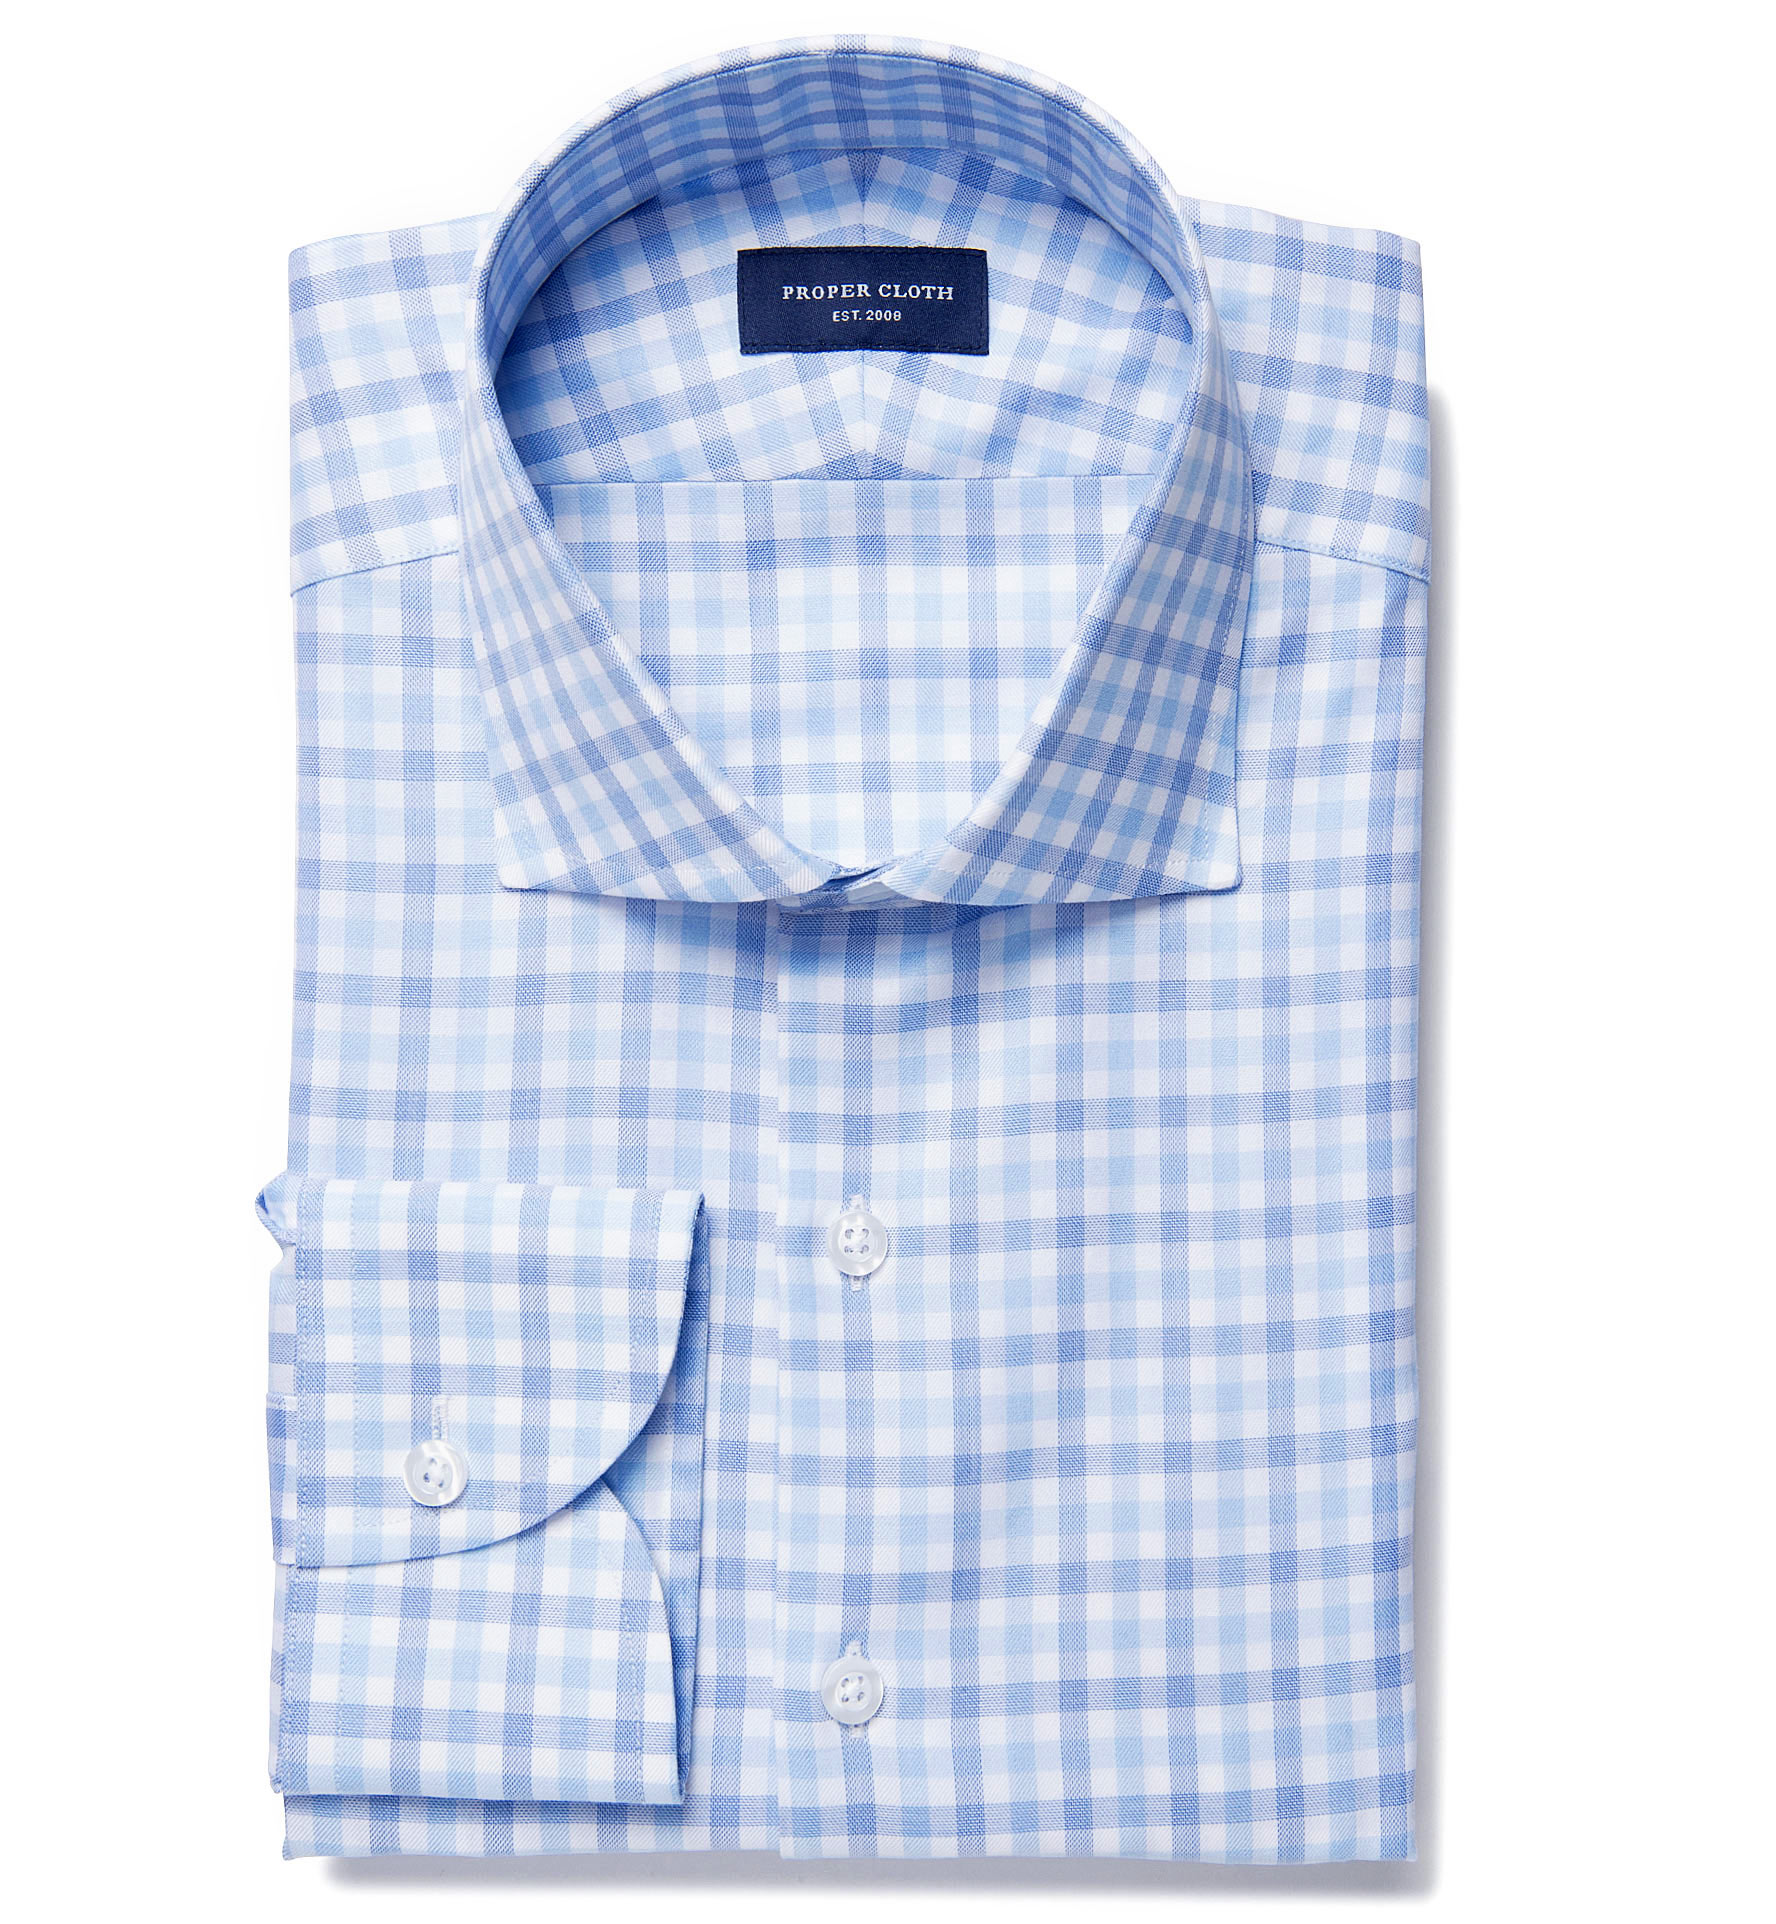 Lucca blue multi gingham fitted dress shirt by proper cloth for Proper cloth custom shirt price